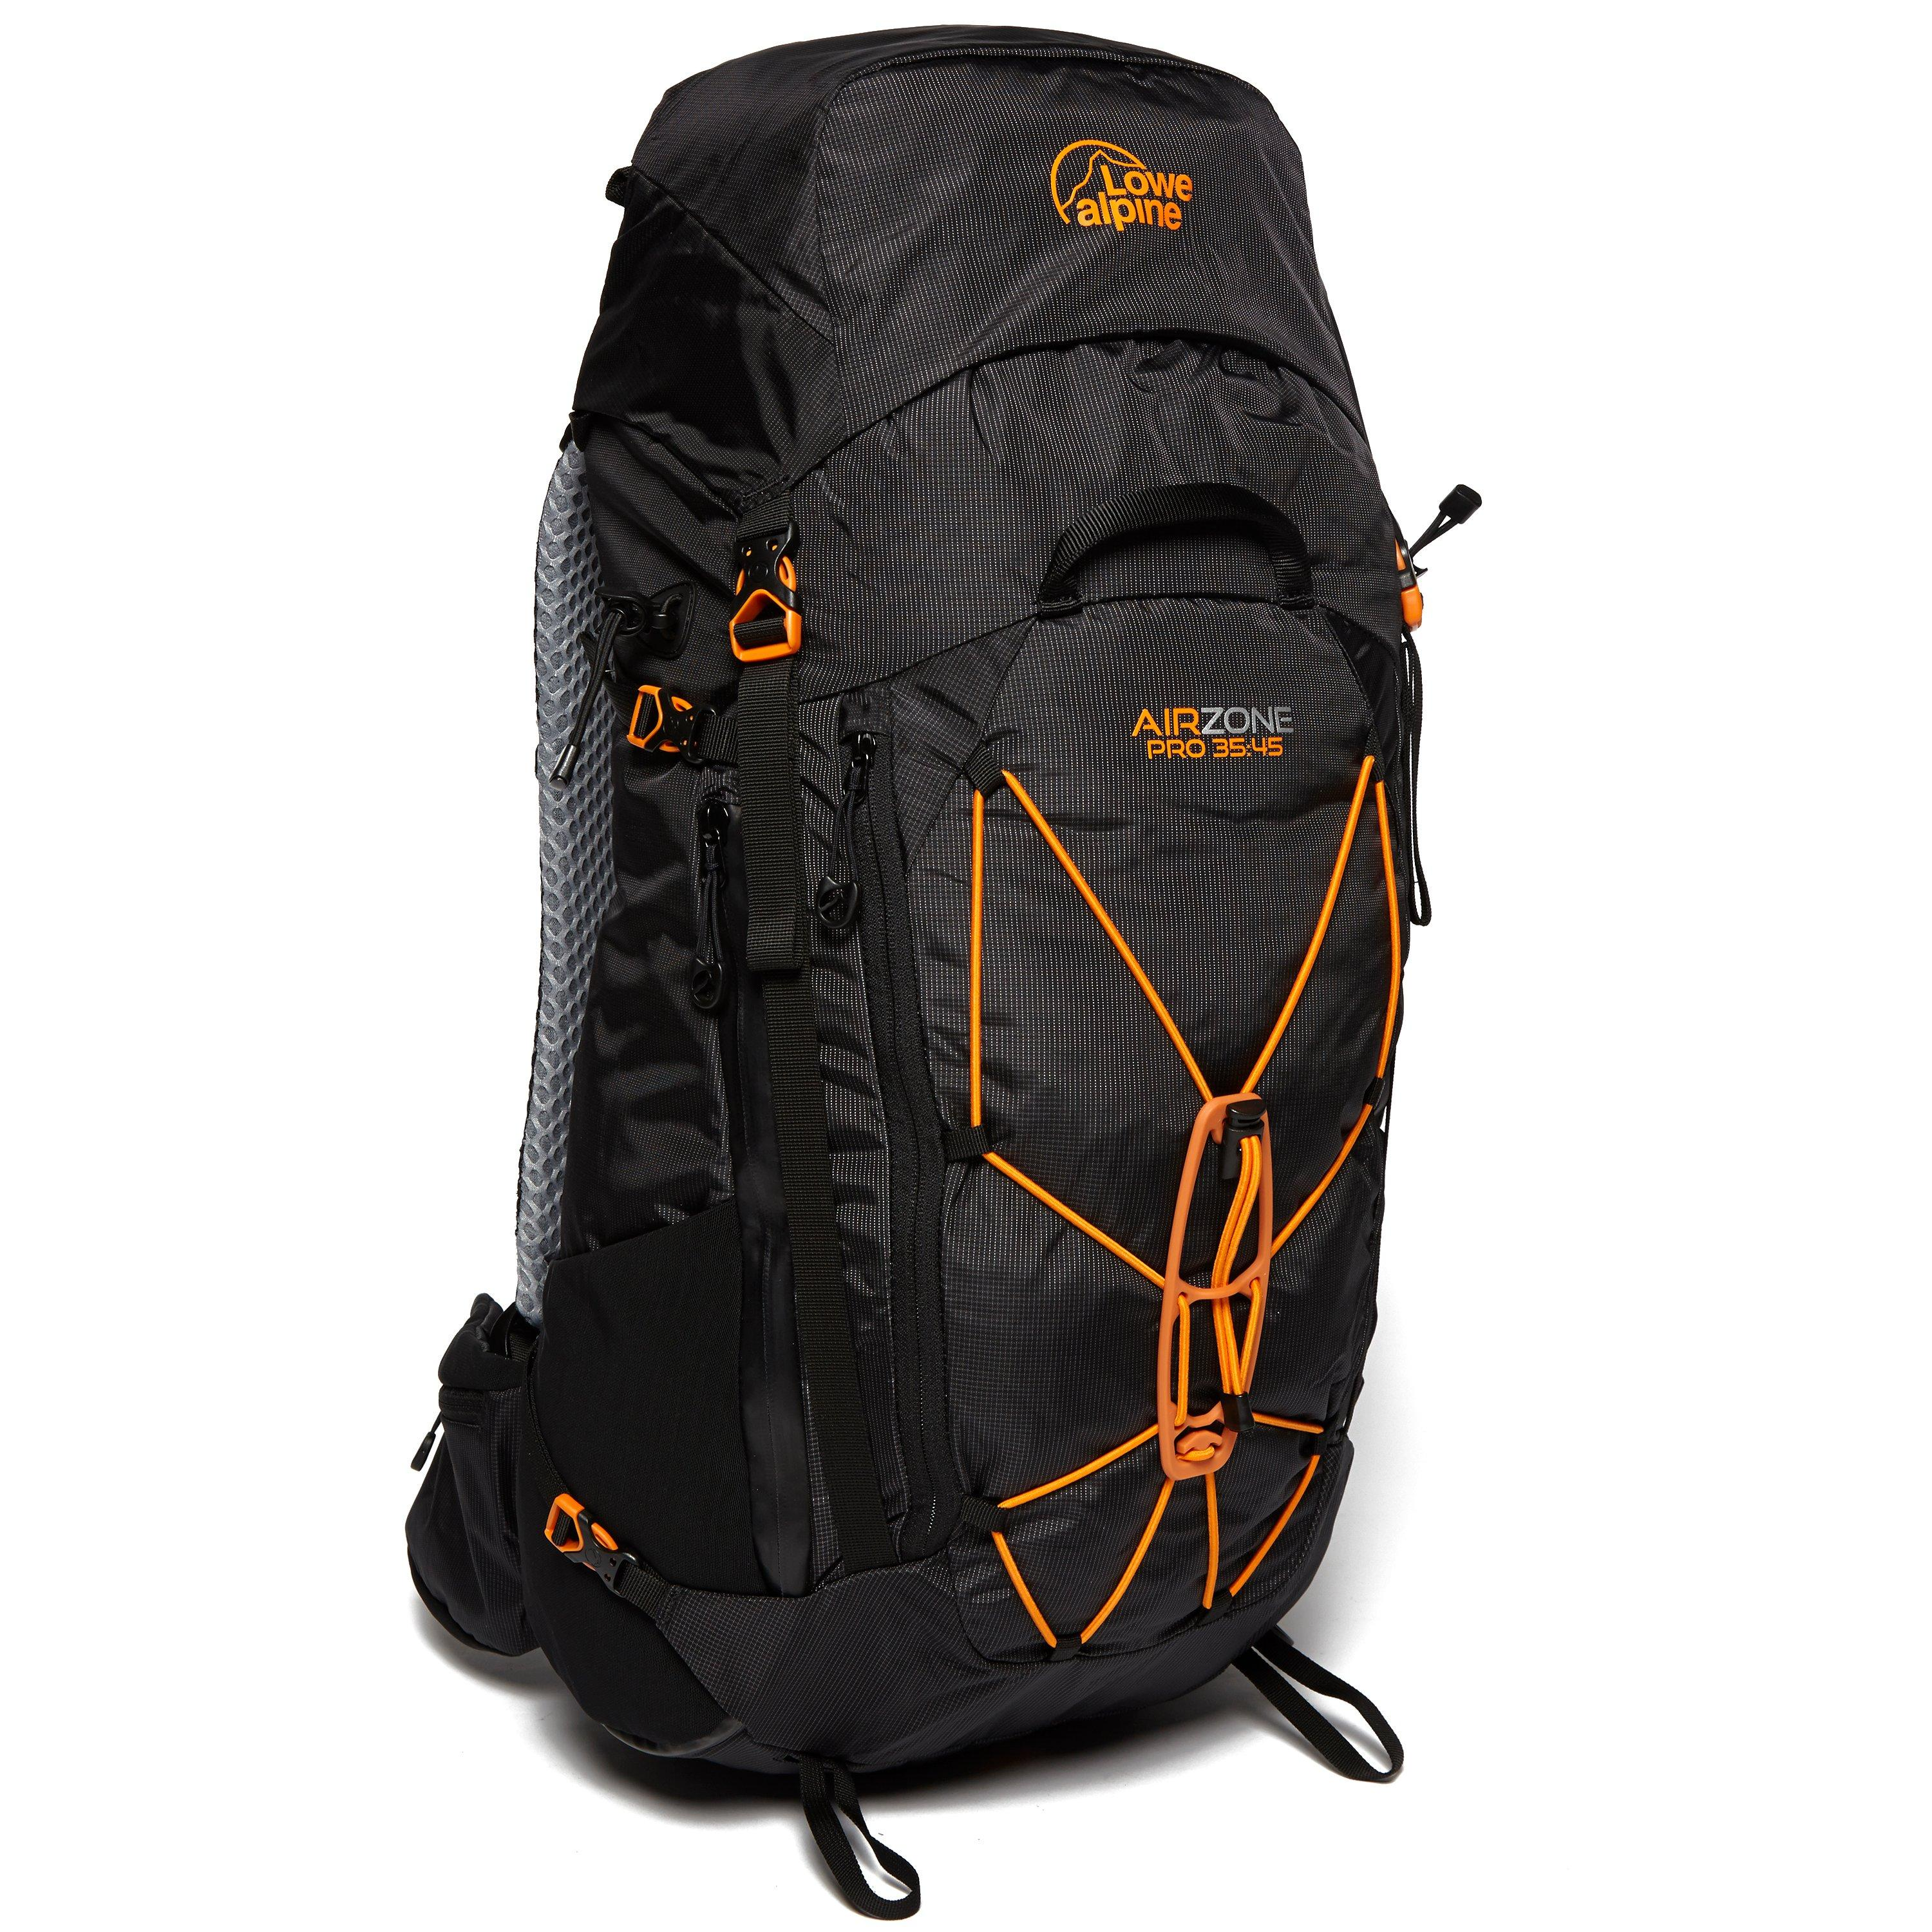 567249c34 Details about New Lowe Alpine AirZone Pro 35:45L Backpack